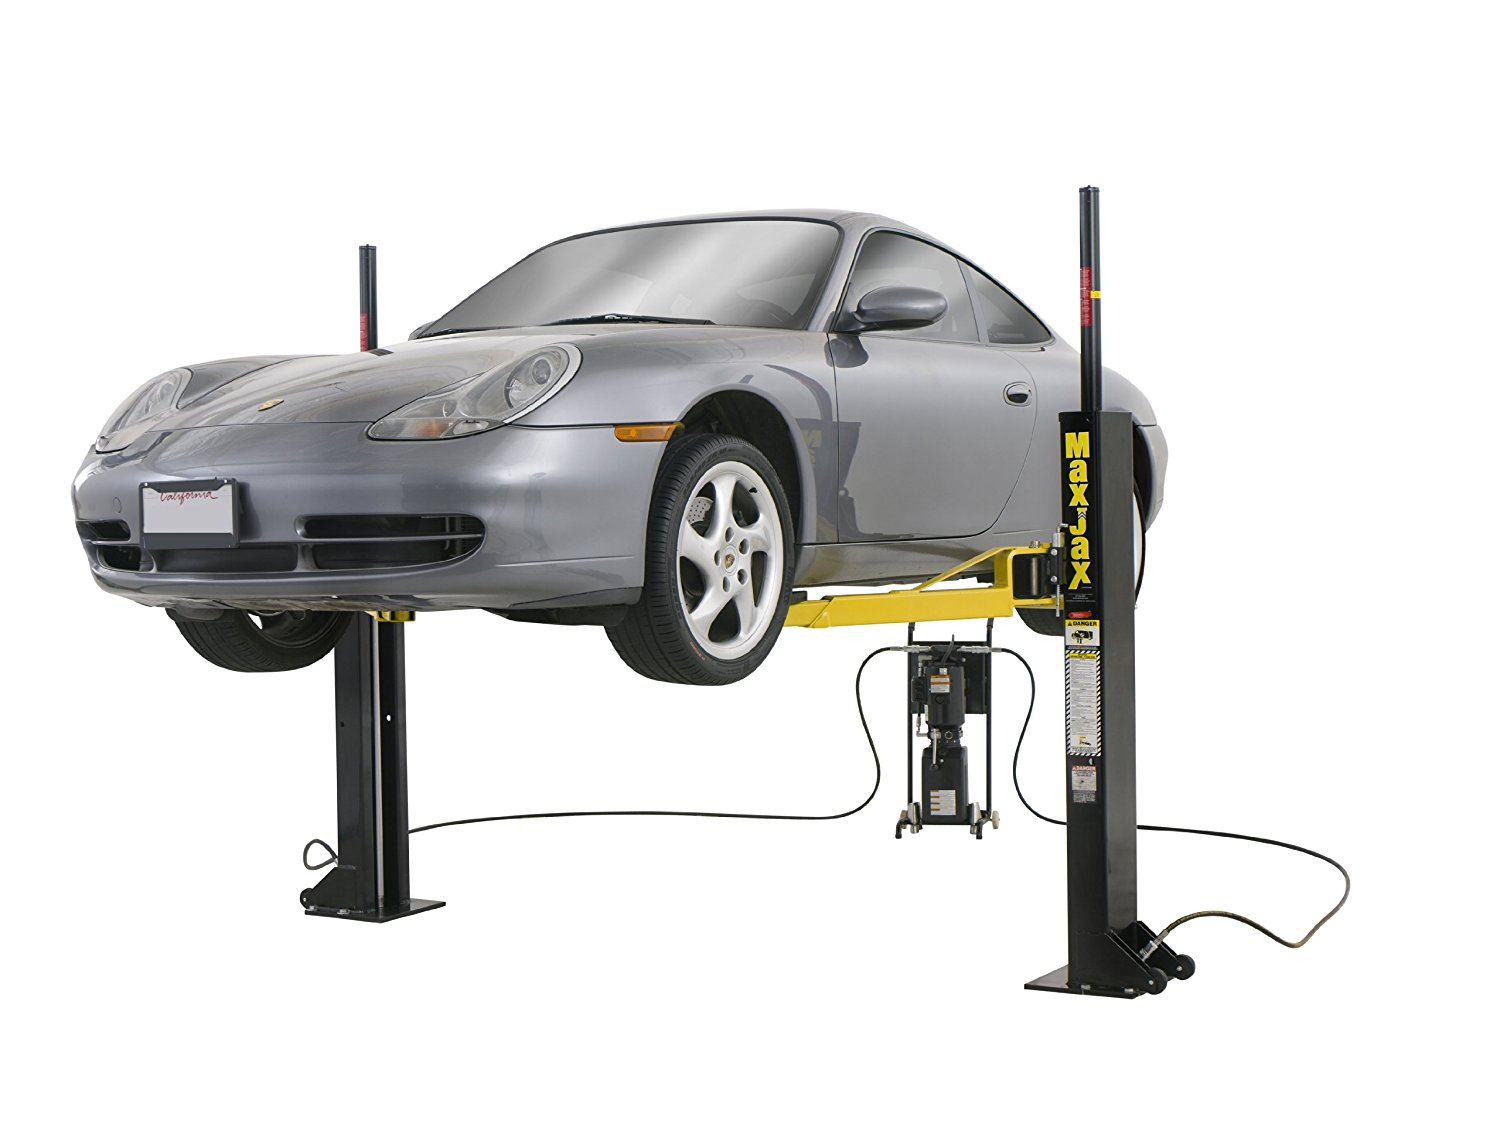 Best Car Lifts For Home Or Professional Garages 2 Post